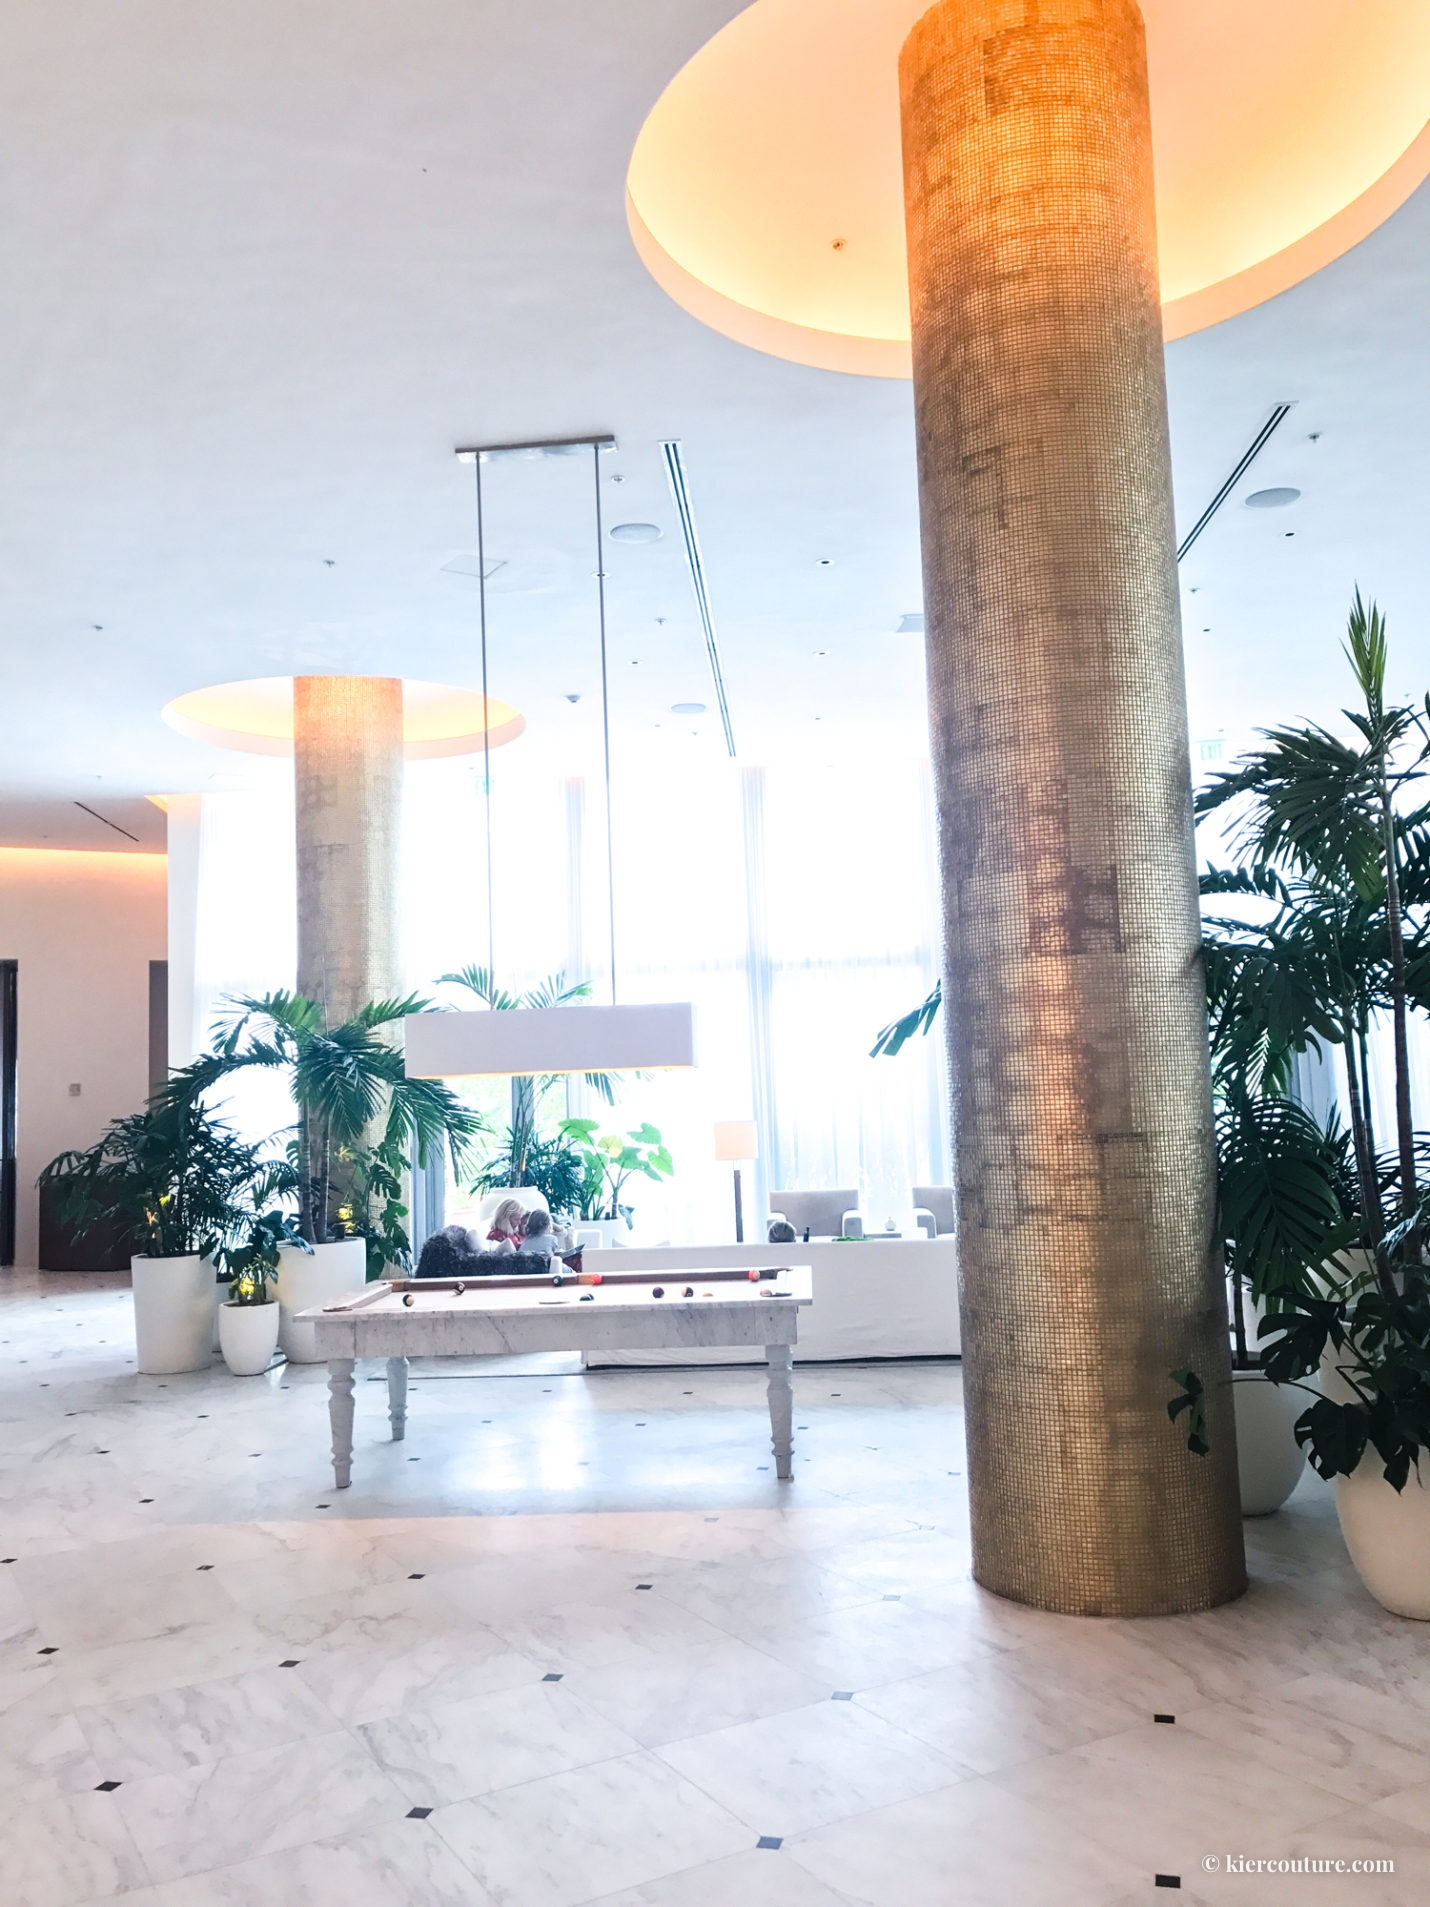 Miami beach edition hotel lobby